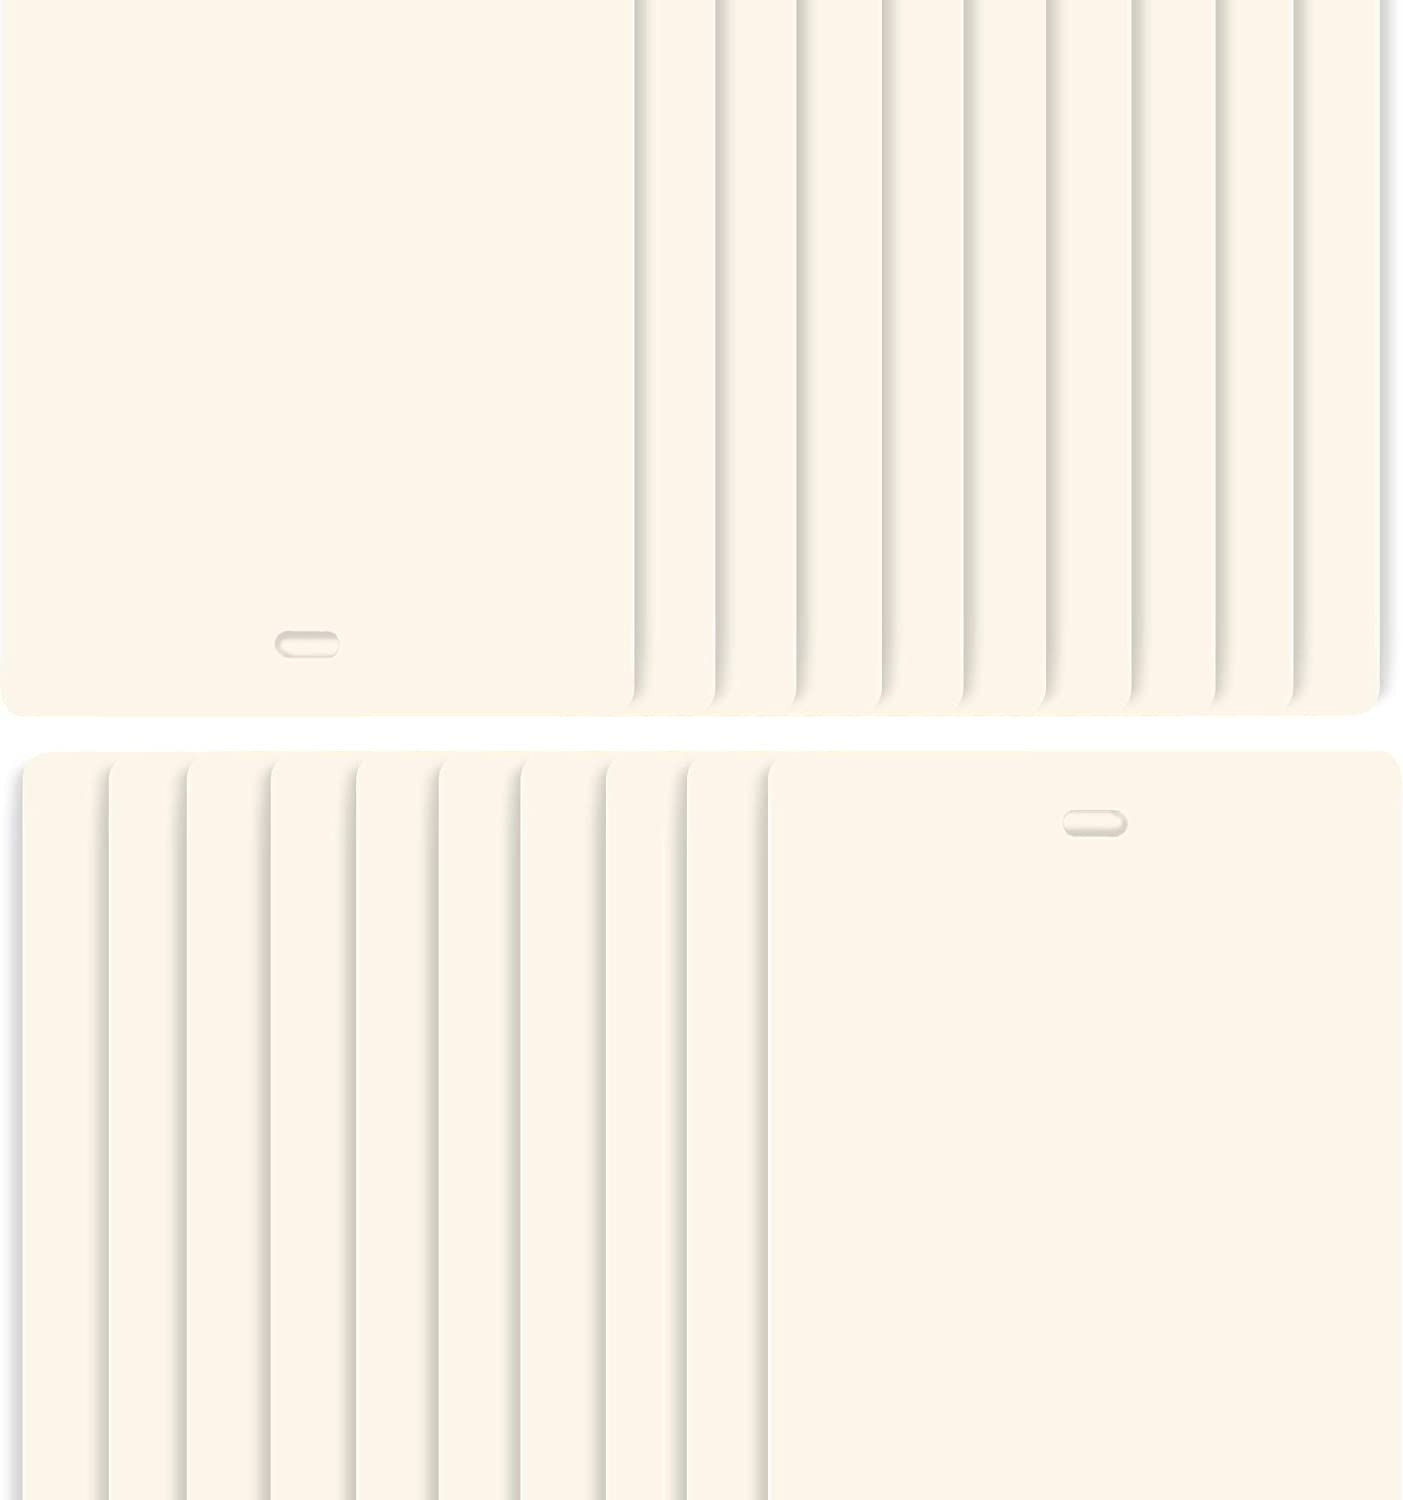 DALIX New life mart PVC Vertical Blind Replacement Curved Smooth Slats Ivory 7